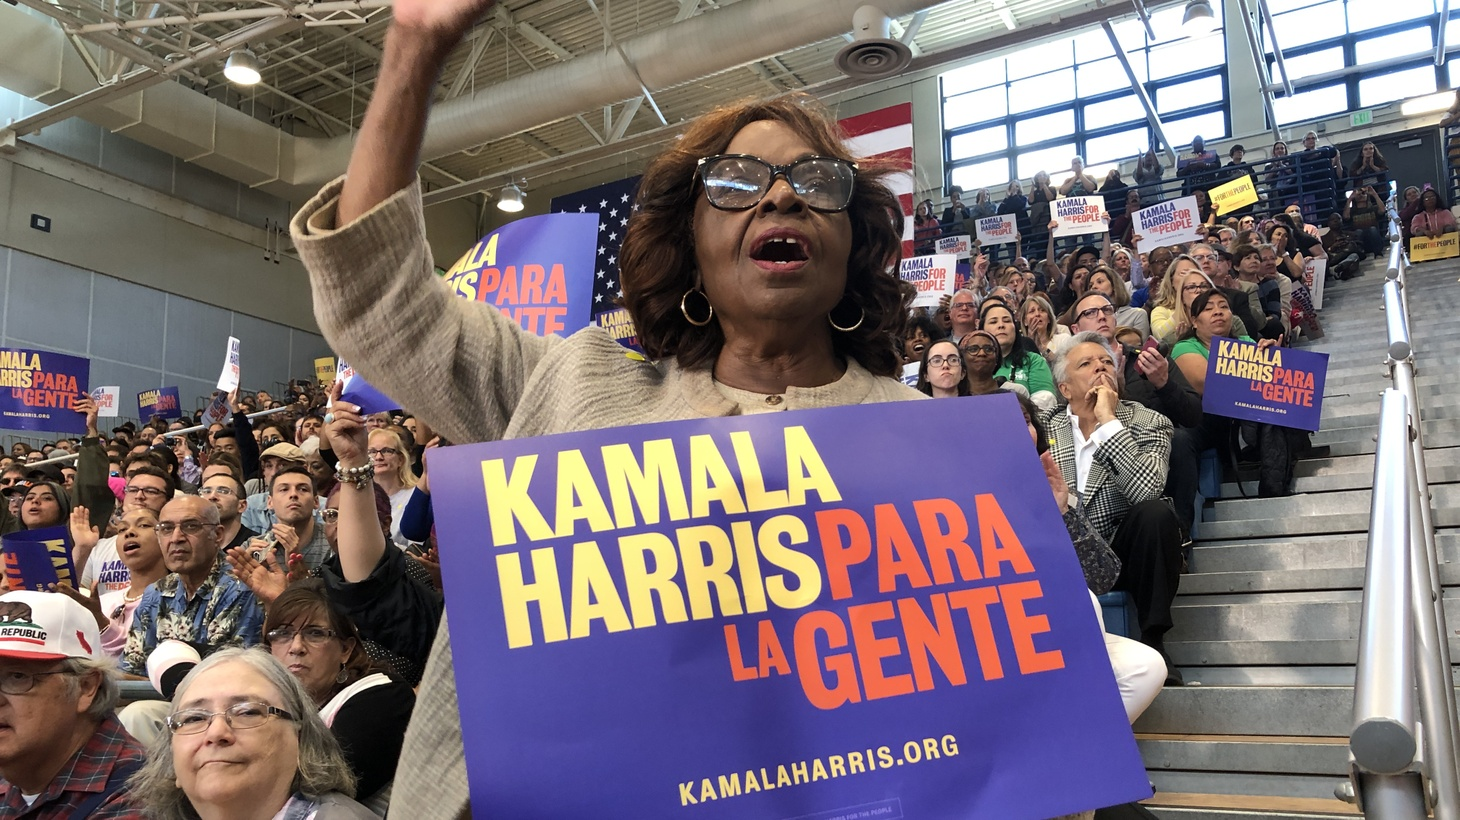 Harris spoke to the diverse crowd Sunday and revealed a plan to close the gender pay gap.